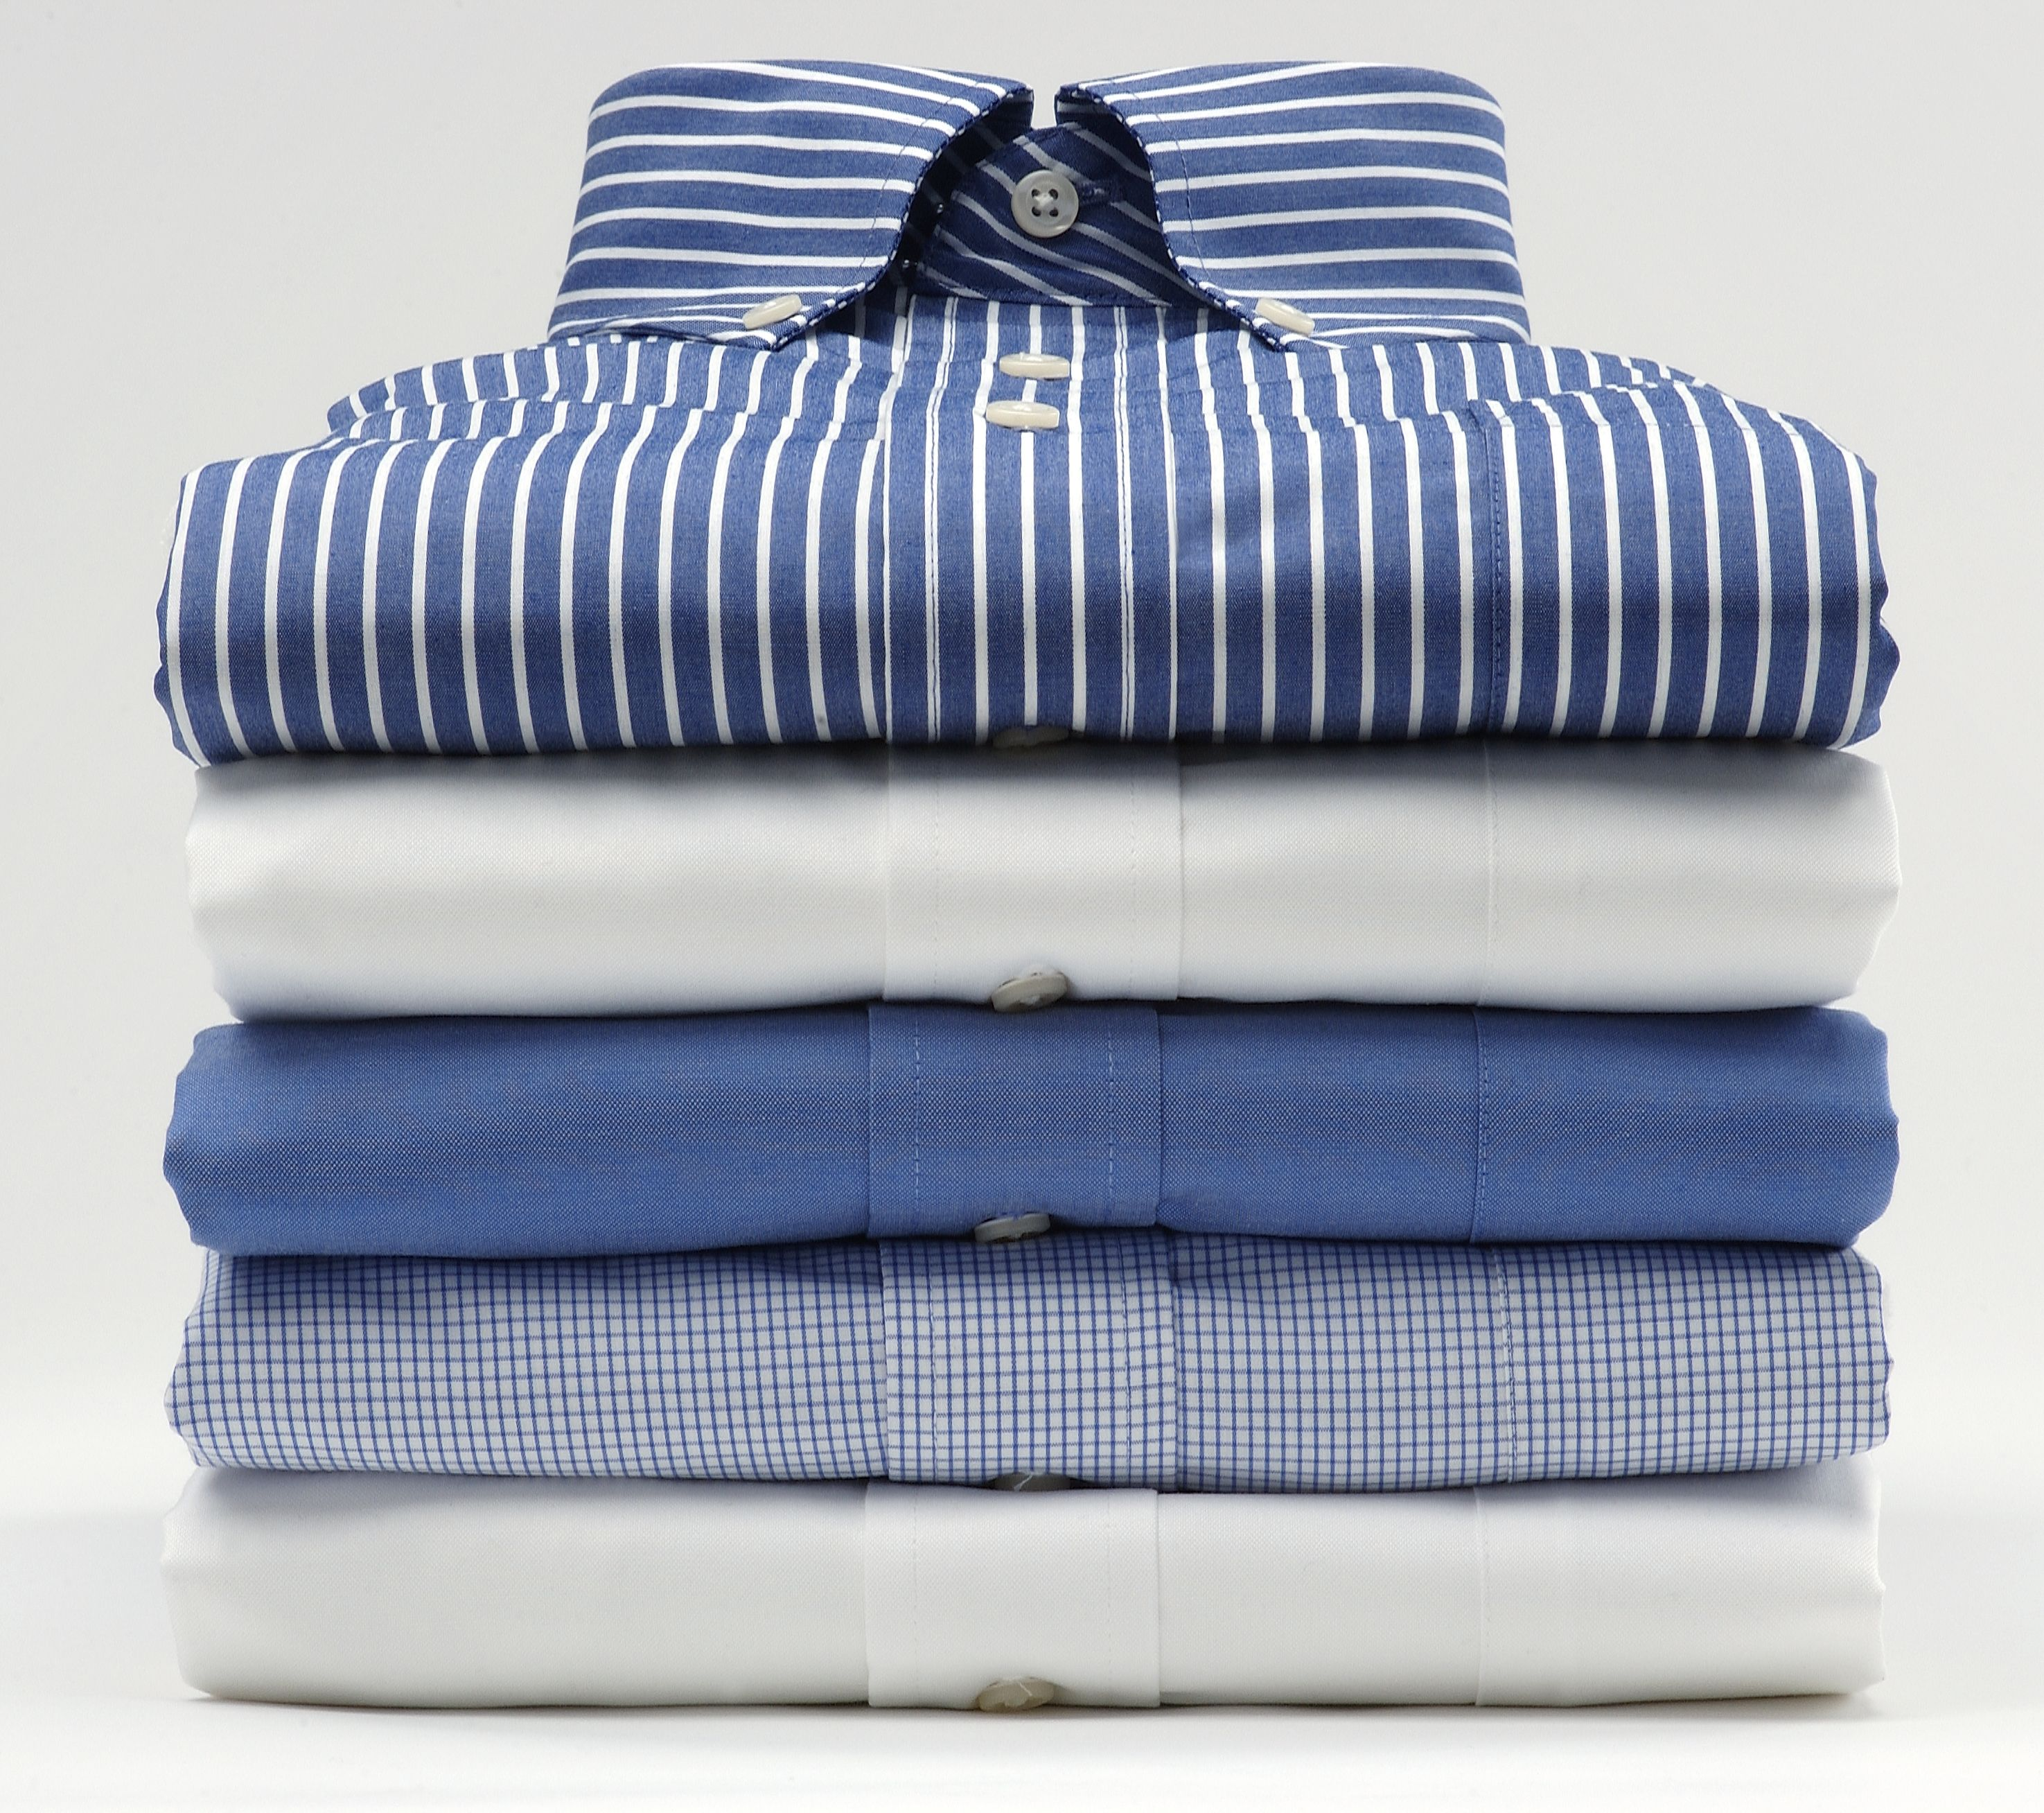 how to properly pack dress shirts for shipping